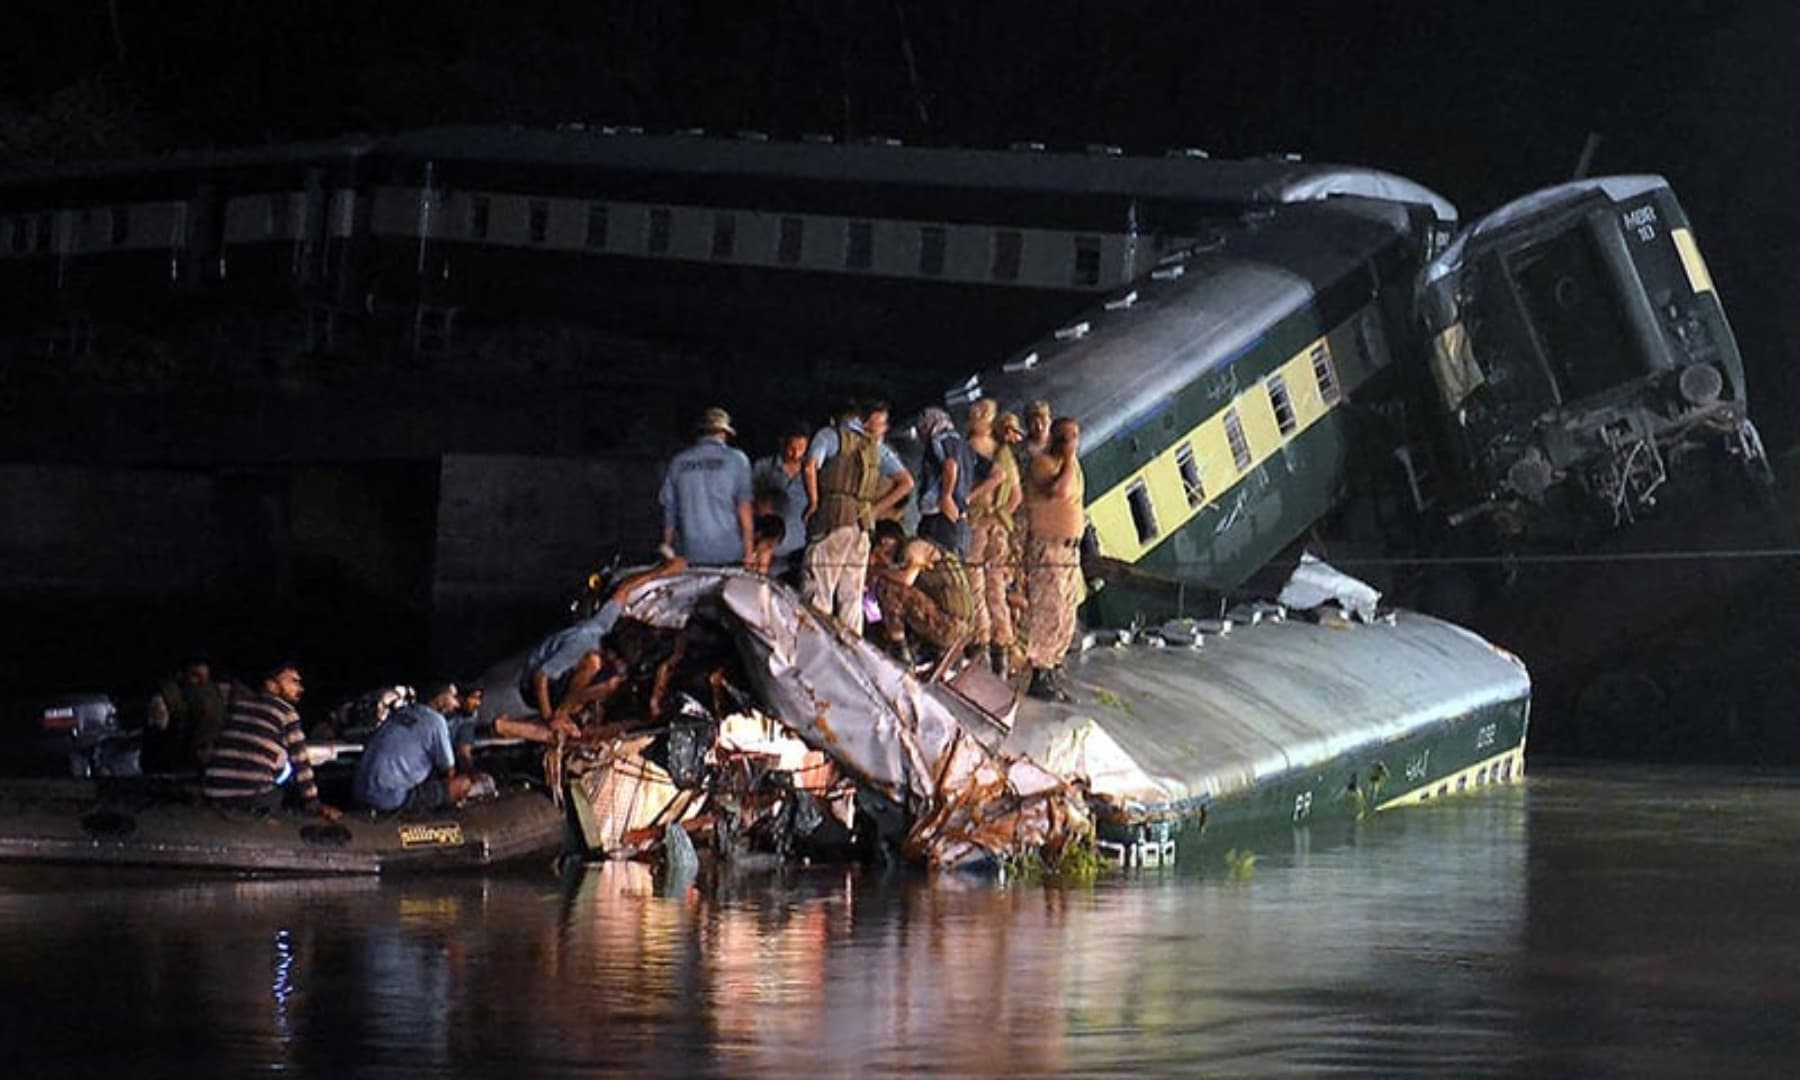 Pakistani rescue workers and troops inspect the wreckage of a train carrying soldiers and military hardware after it fell into a canal following the partial collapse of a bridge in Wazirabad, Gujranwala, July 2, 2015. — AFP/File